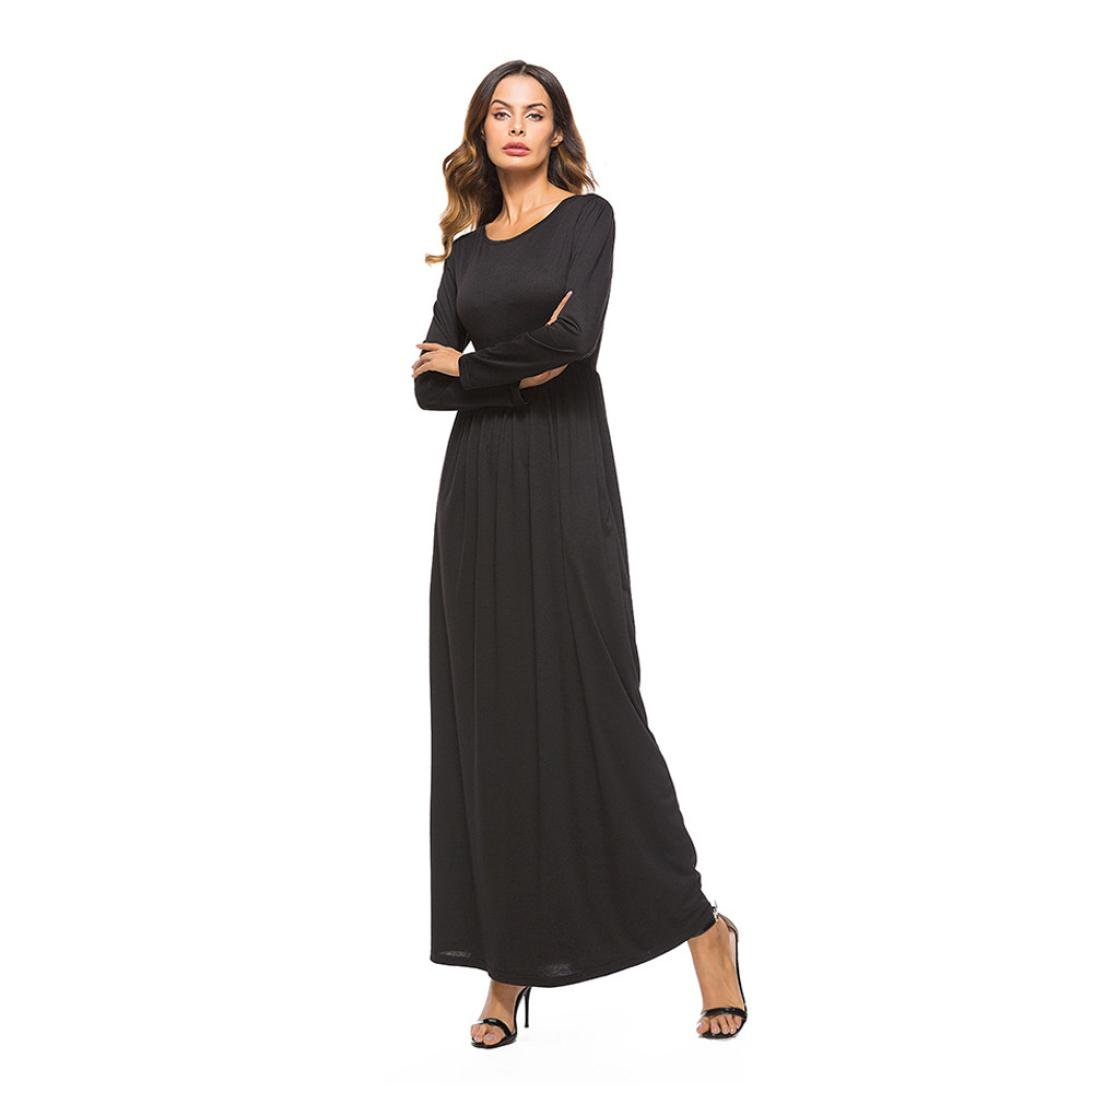 ... Womens Casual Loose Long Dress Sexy Ladies Spring Autumn Stylish Pockets O Neck Long Sleeve Dress Evening Party Long Dress: Amazon.co.uk: Clothing